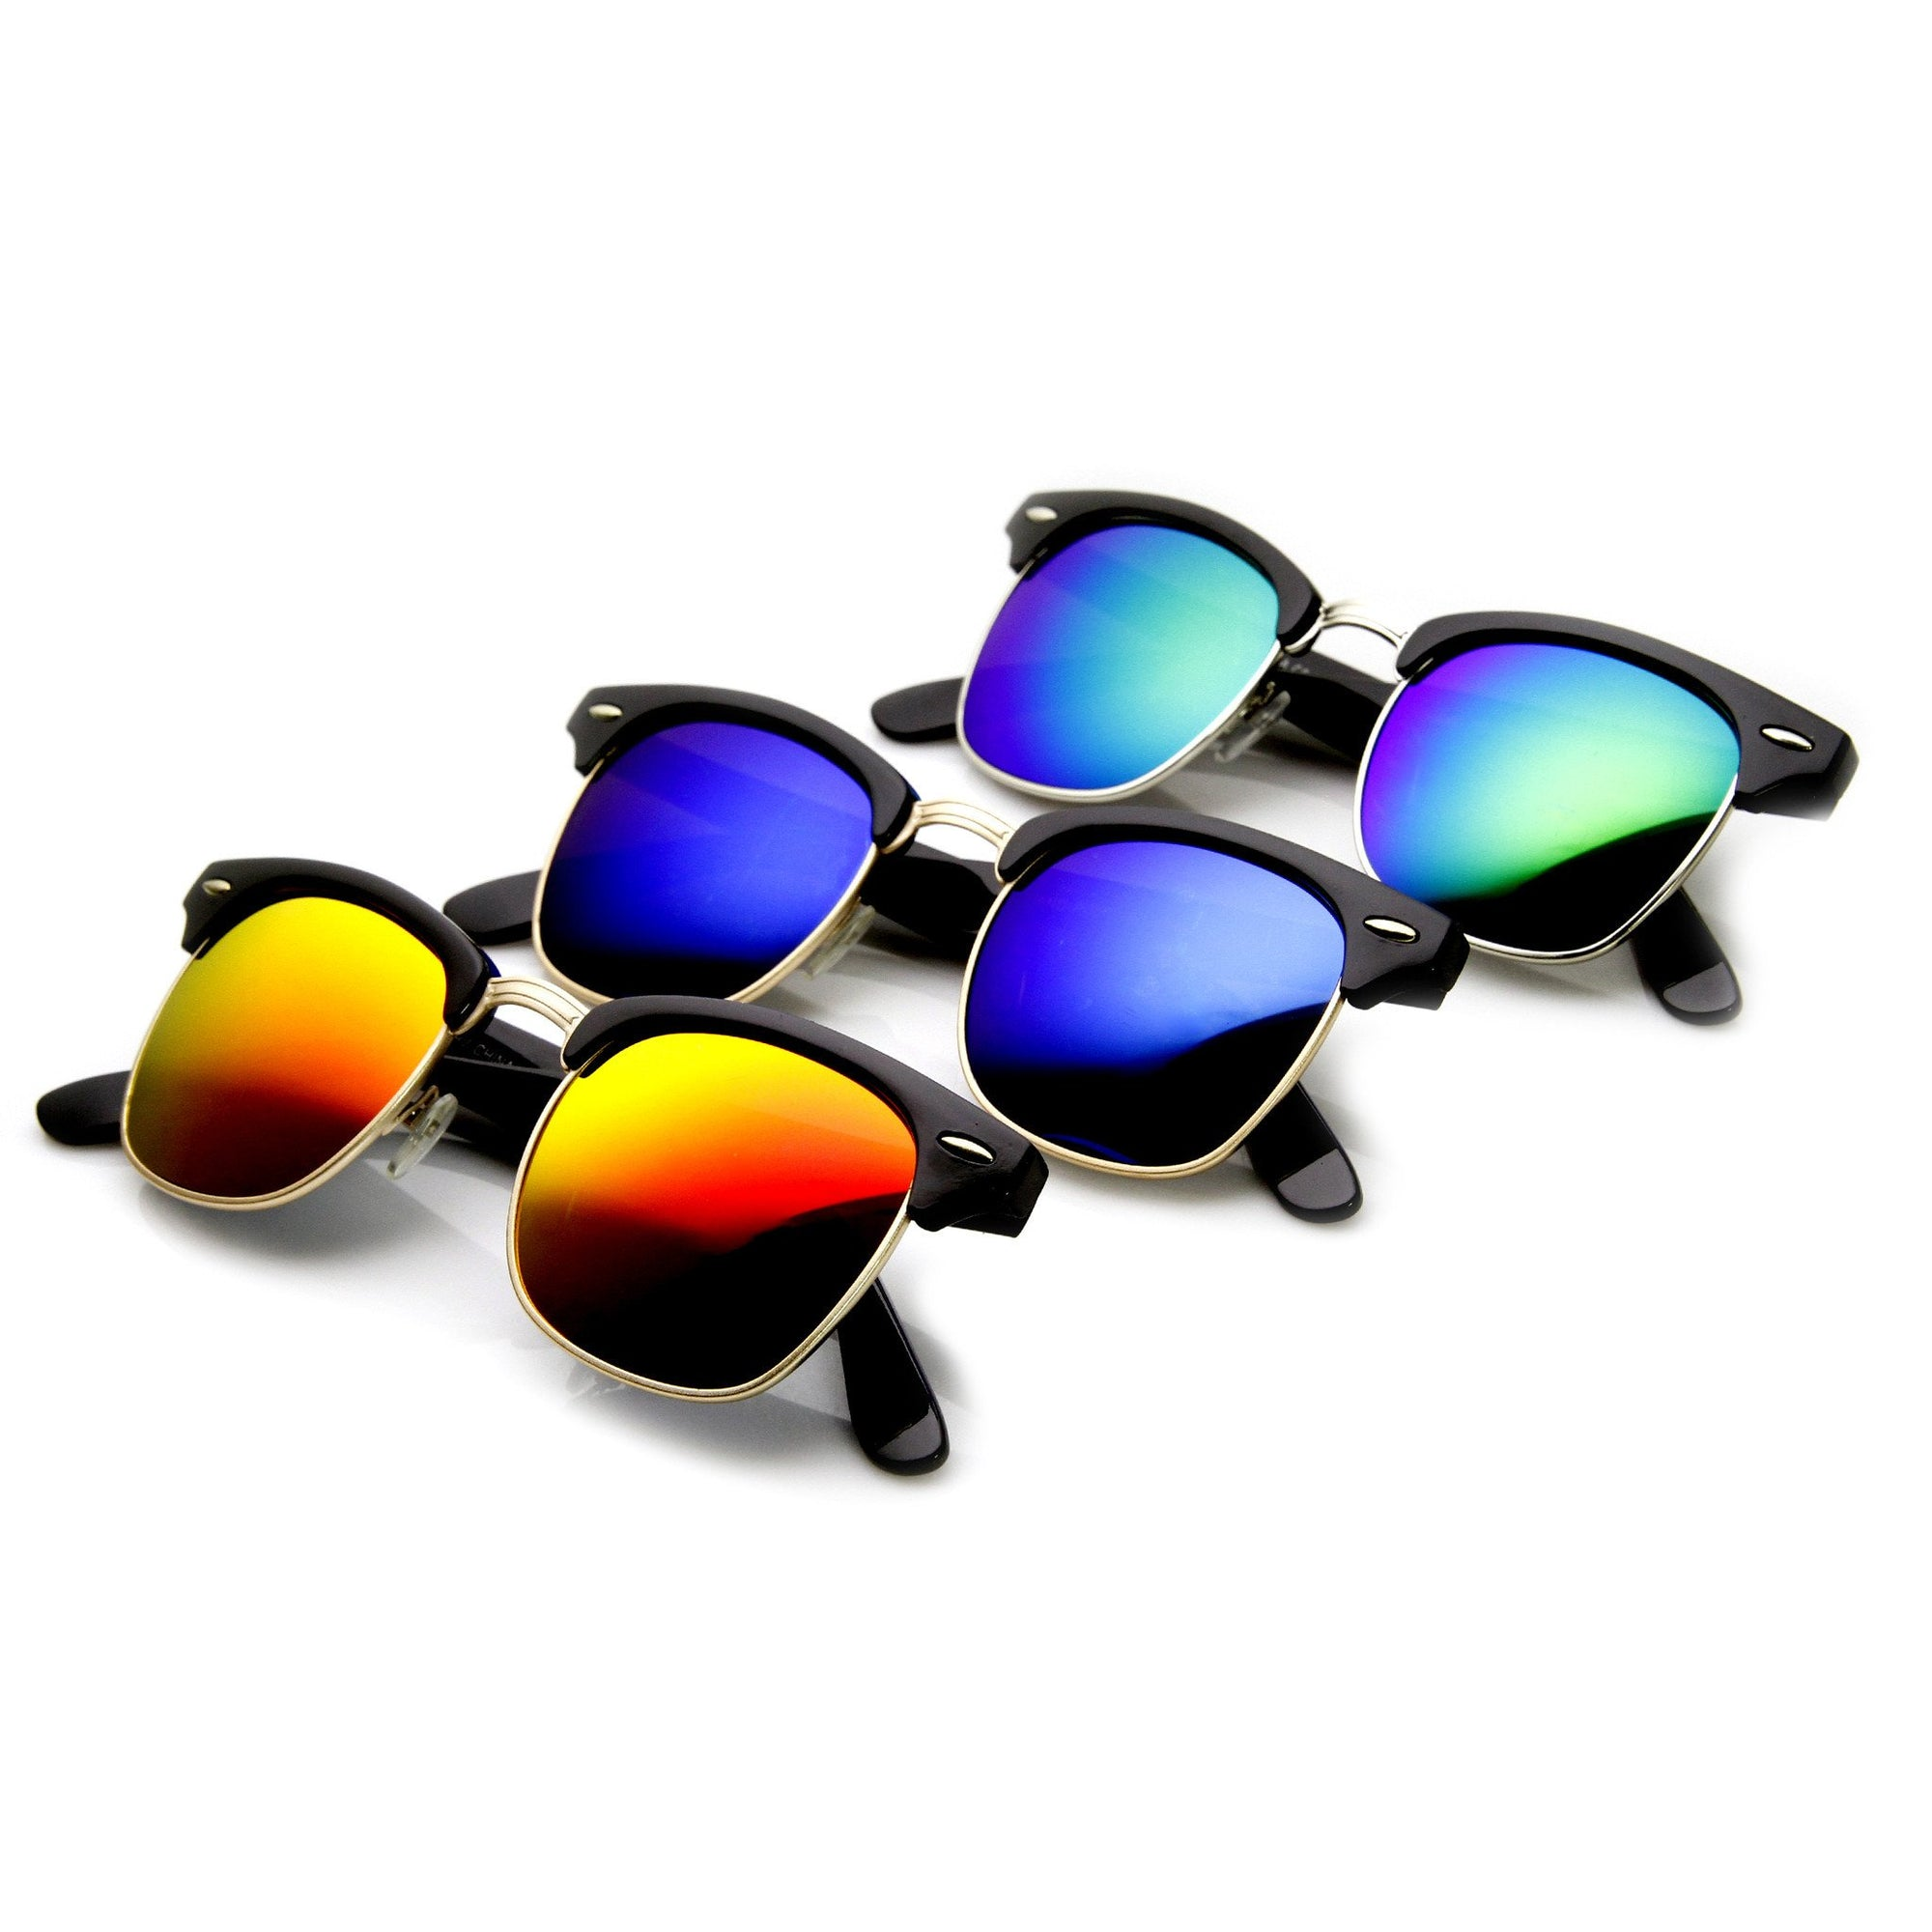 Retro Horned Rim Half Frame Flash Mirror Lens Sunglasses 9309 [3Pack]